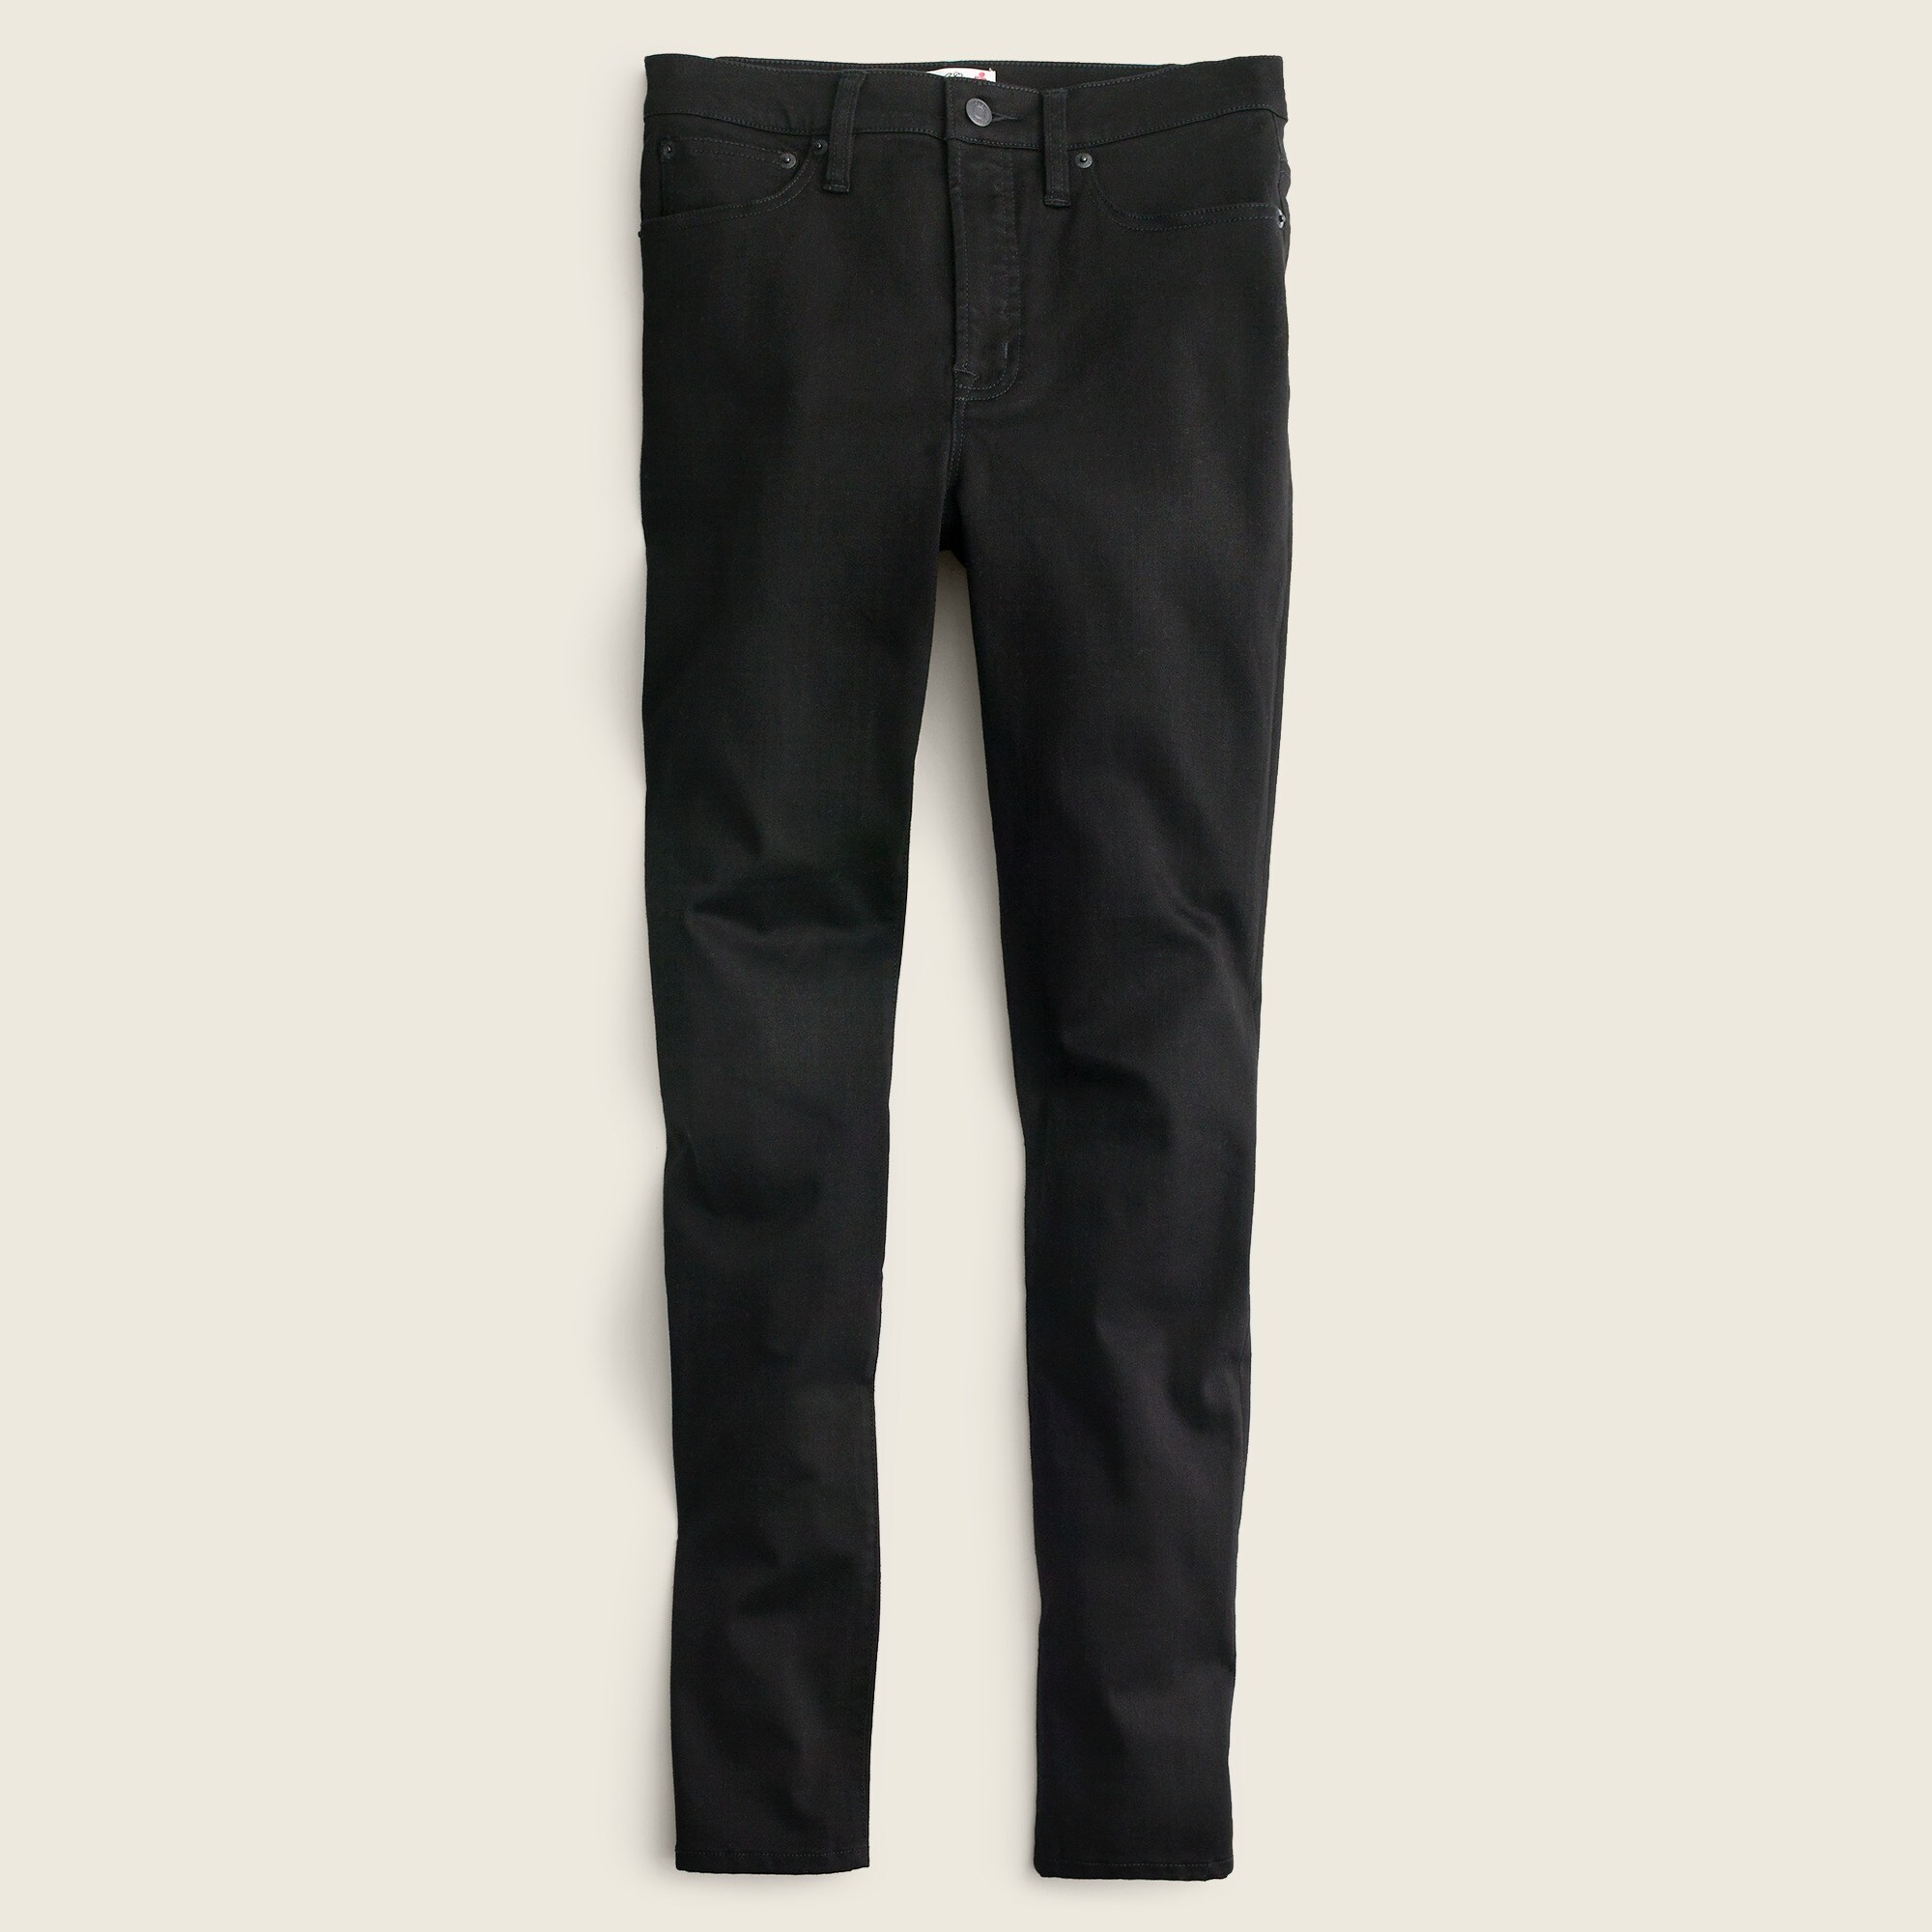 "Image 5 for Tall 10"" highest-rise toothpick jean in true black"